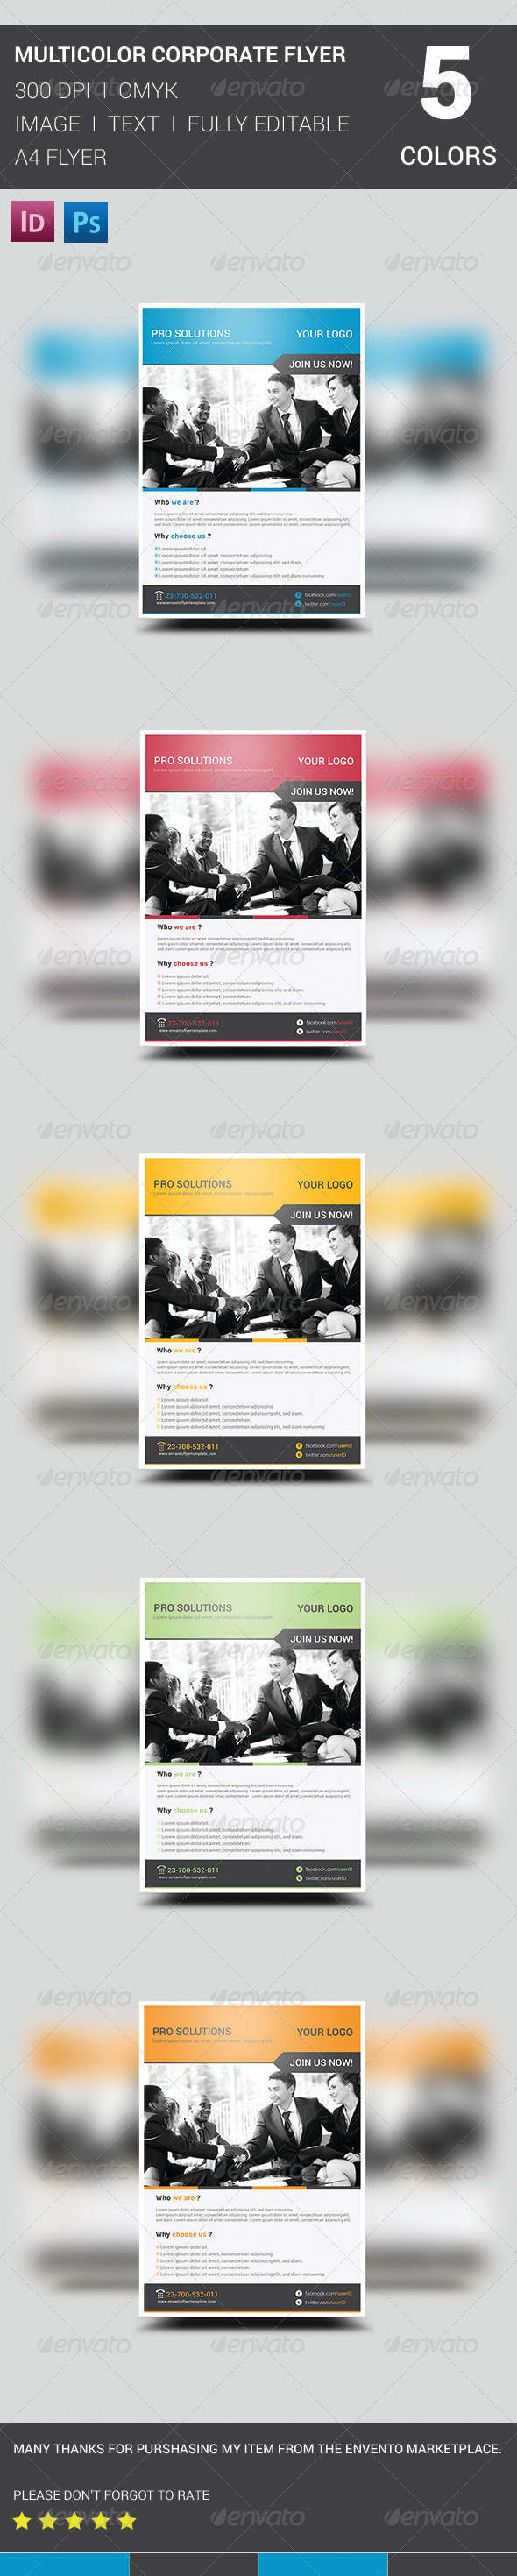 GraphicRiver Multicolor Corporate Flyer 8644612